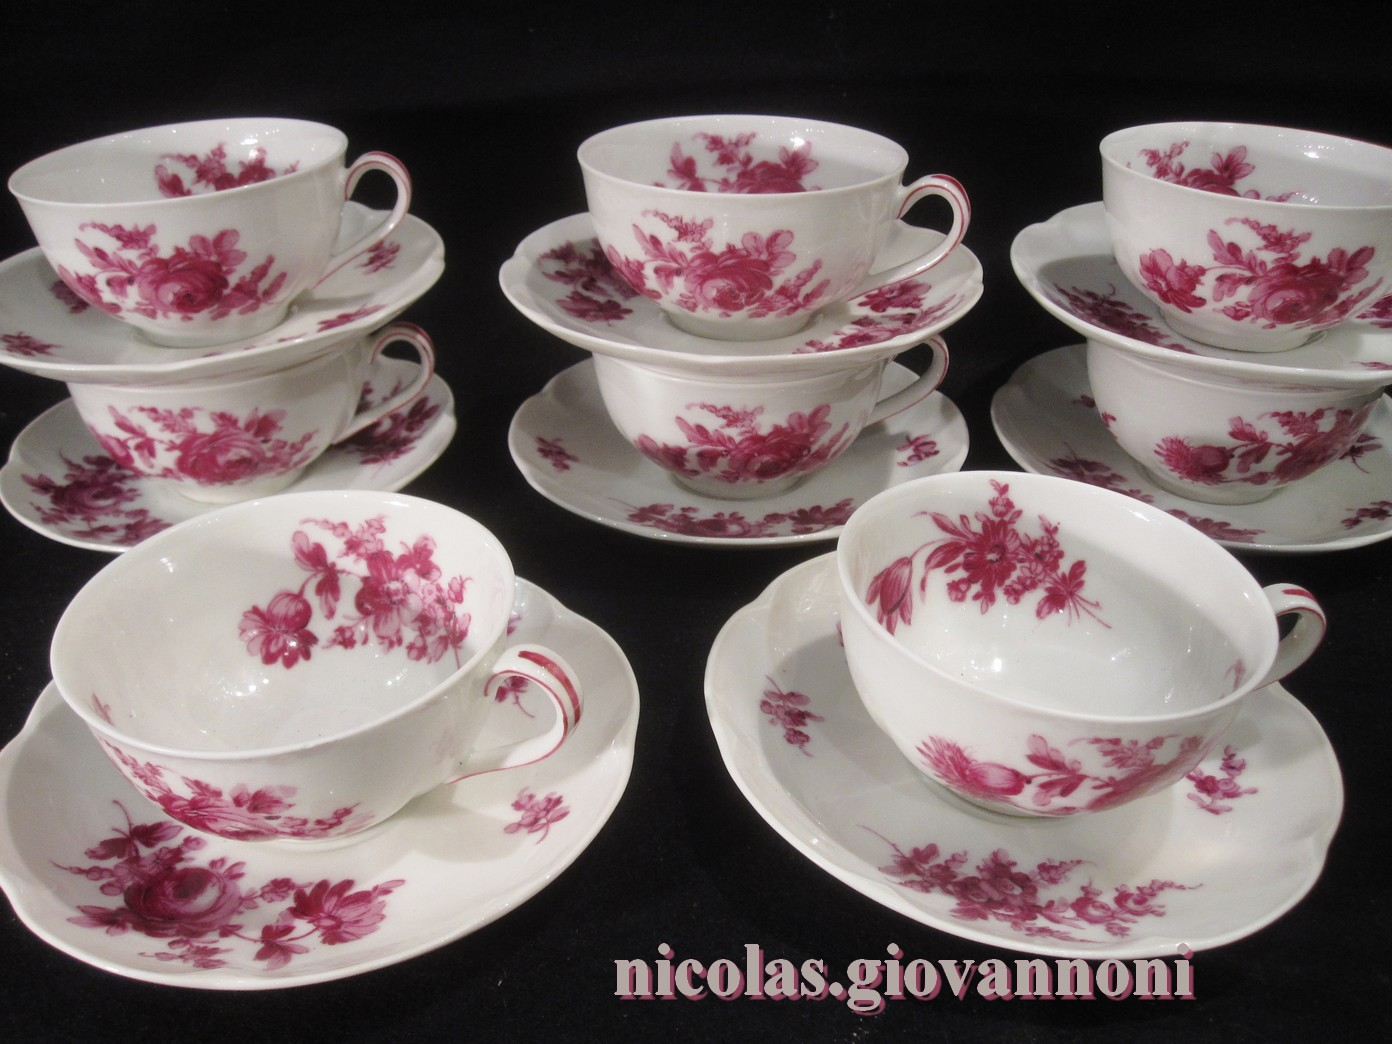 8 Tasses Dcor Camaieu Rouge Haviland Porcelaine Catalogue Cristal De France Nicolas